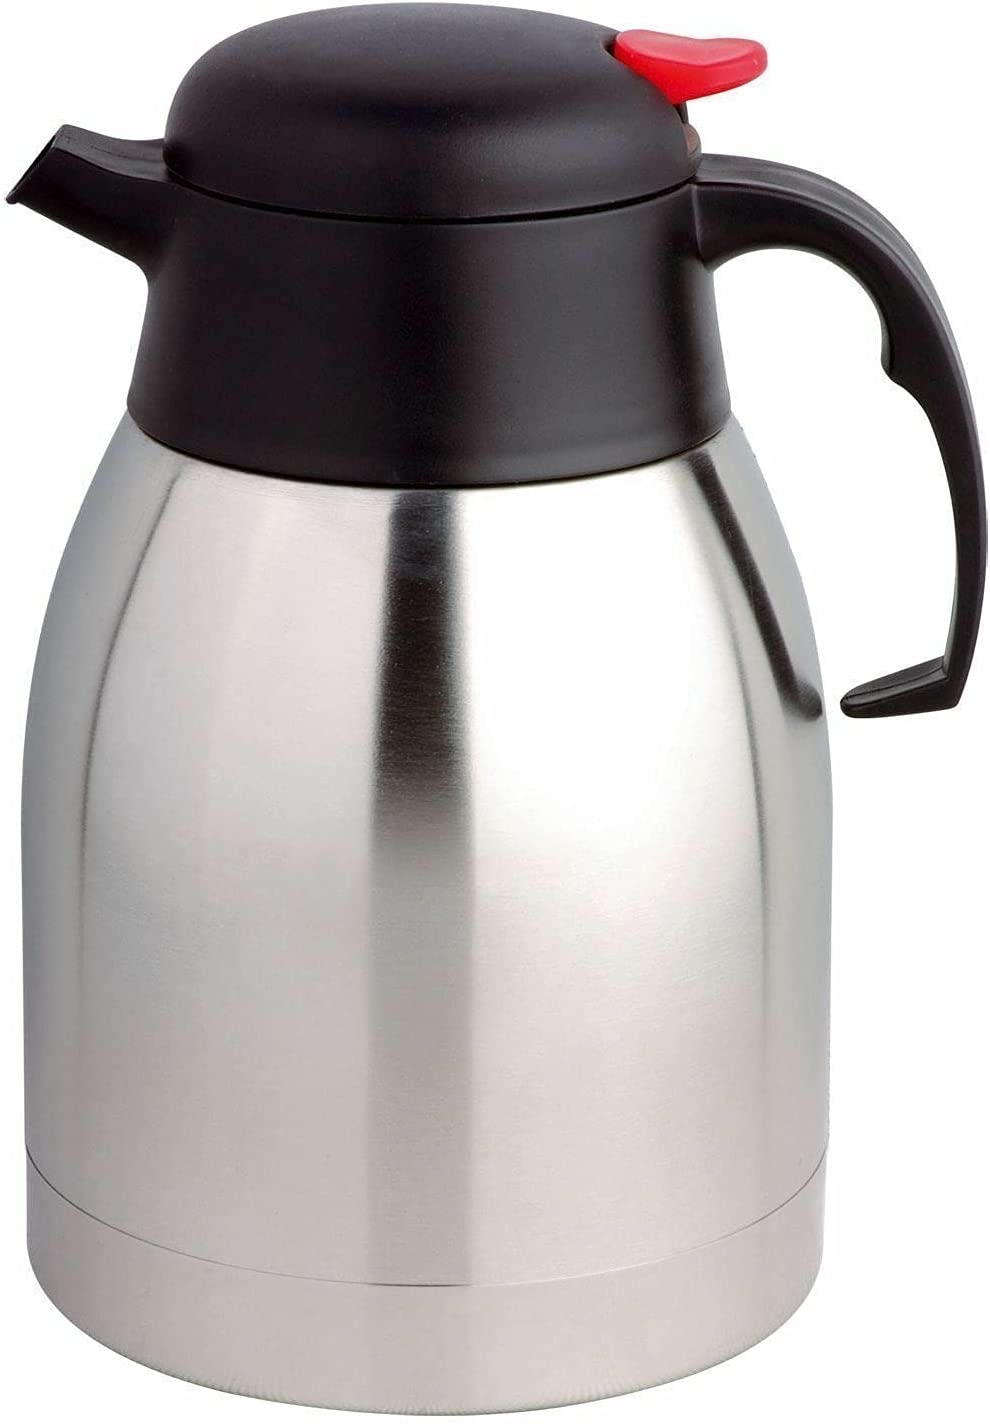 2l S s Overseas parallel import regular item Steel Vacuum Our shop most popular Kettle Flask Insulated Cold D Hot Tea Coffee